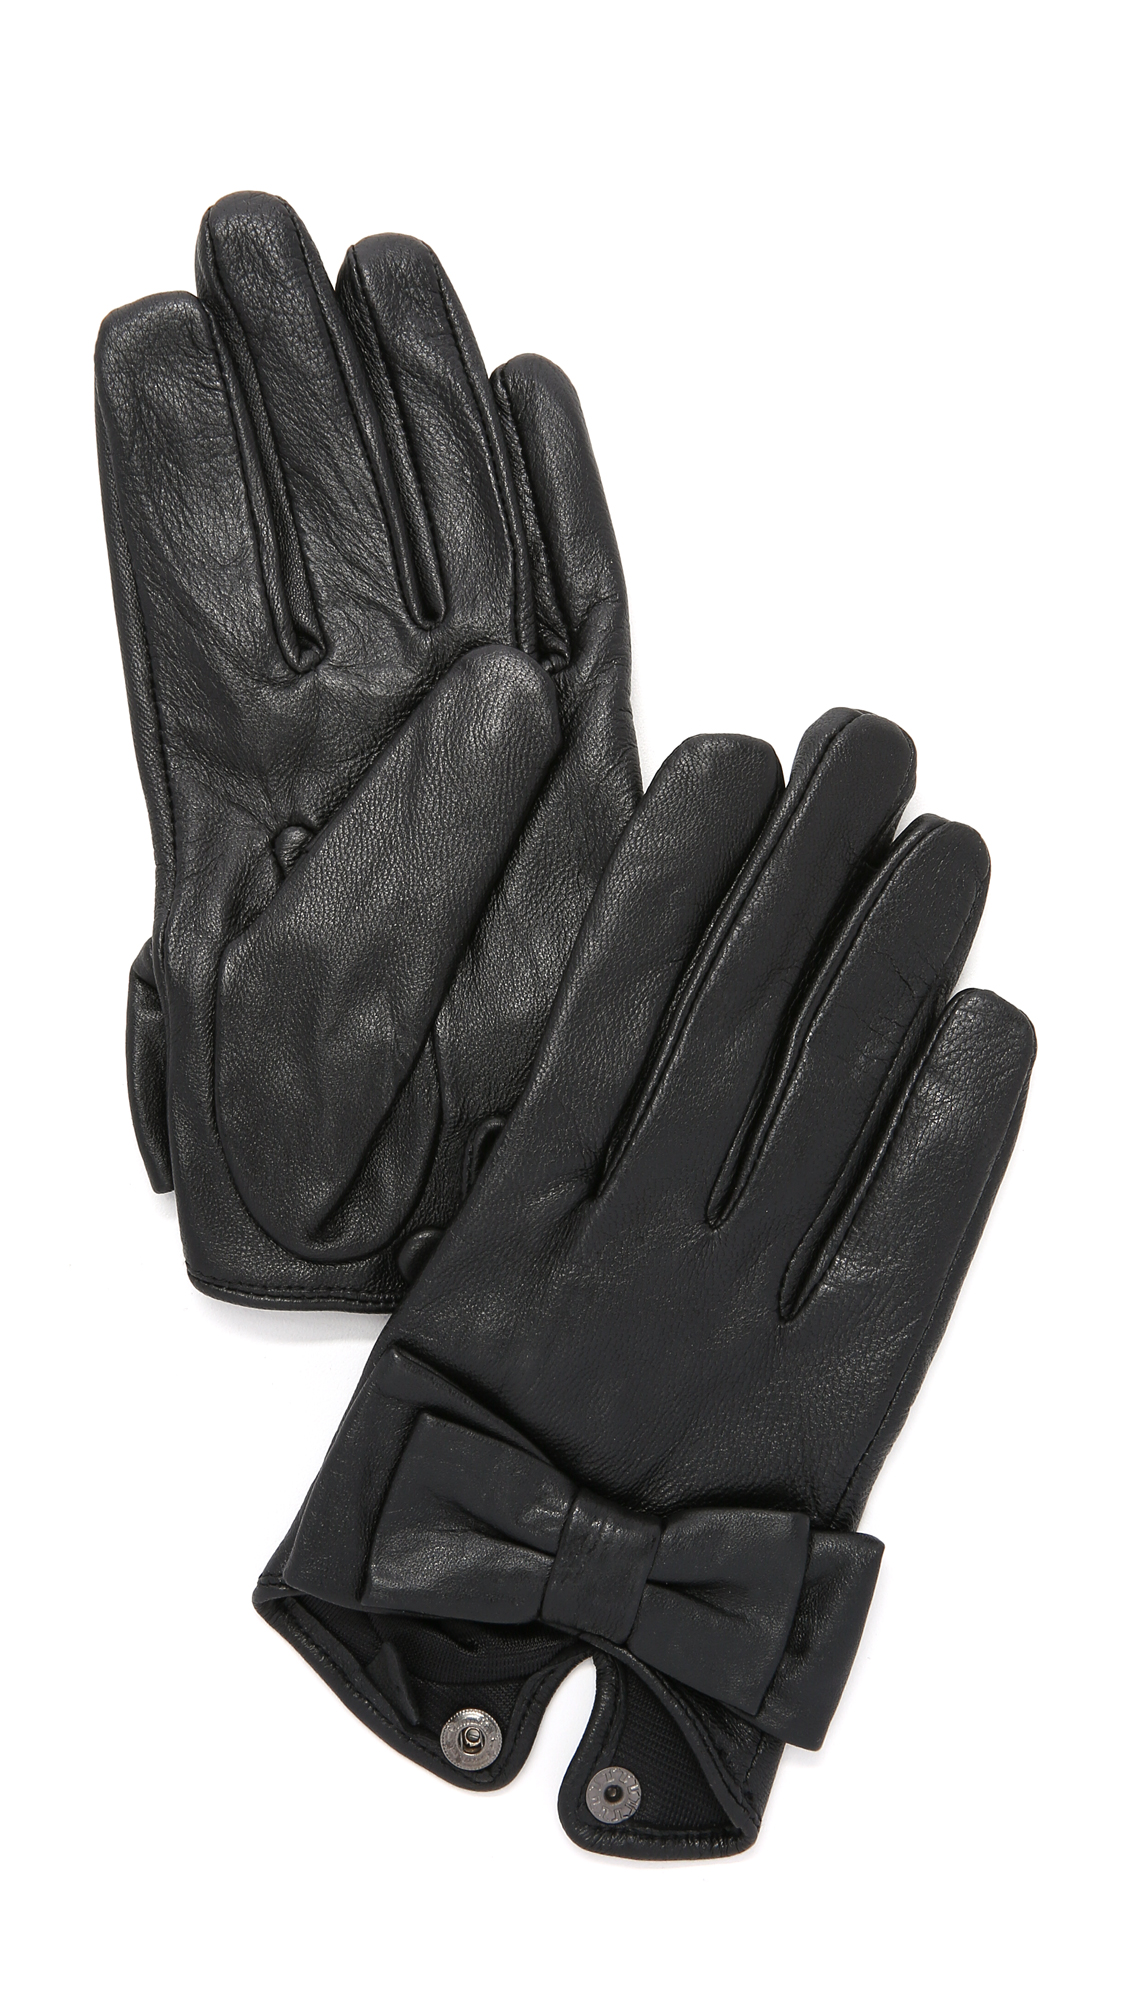 Carolina Amato Bow Snap Gloves - Black